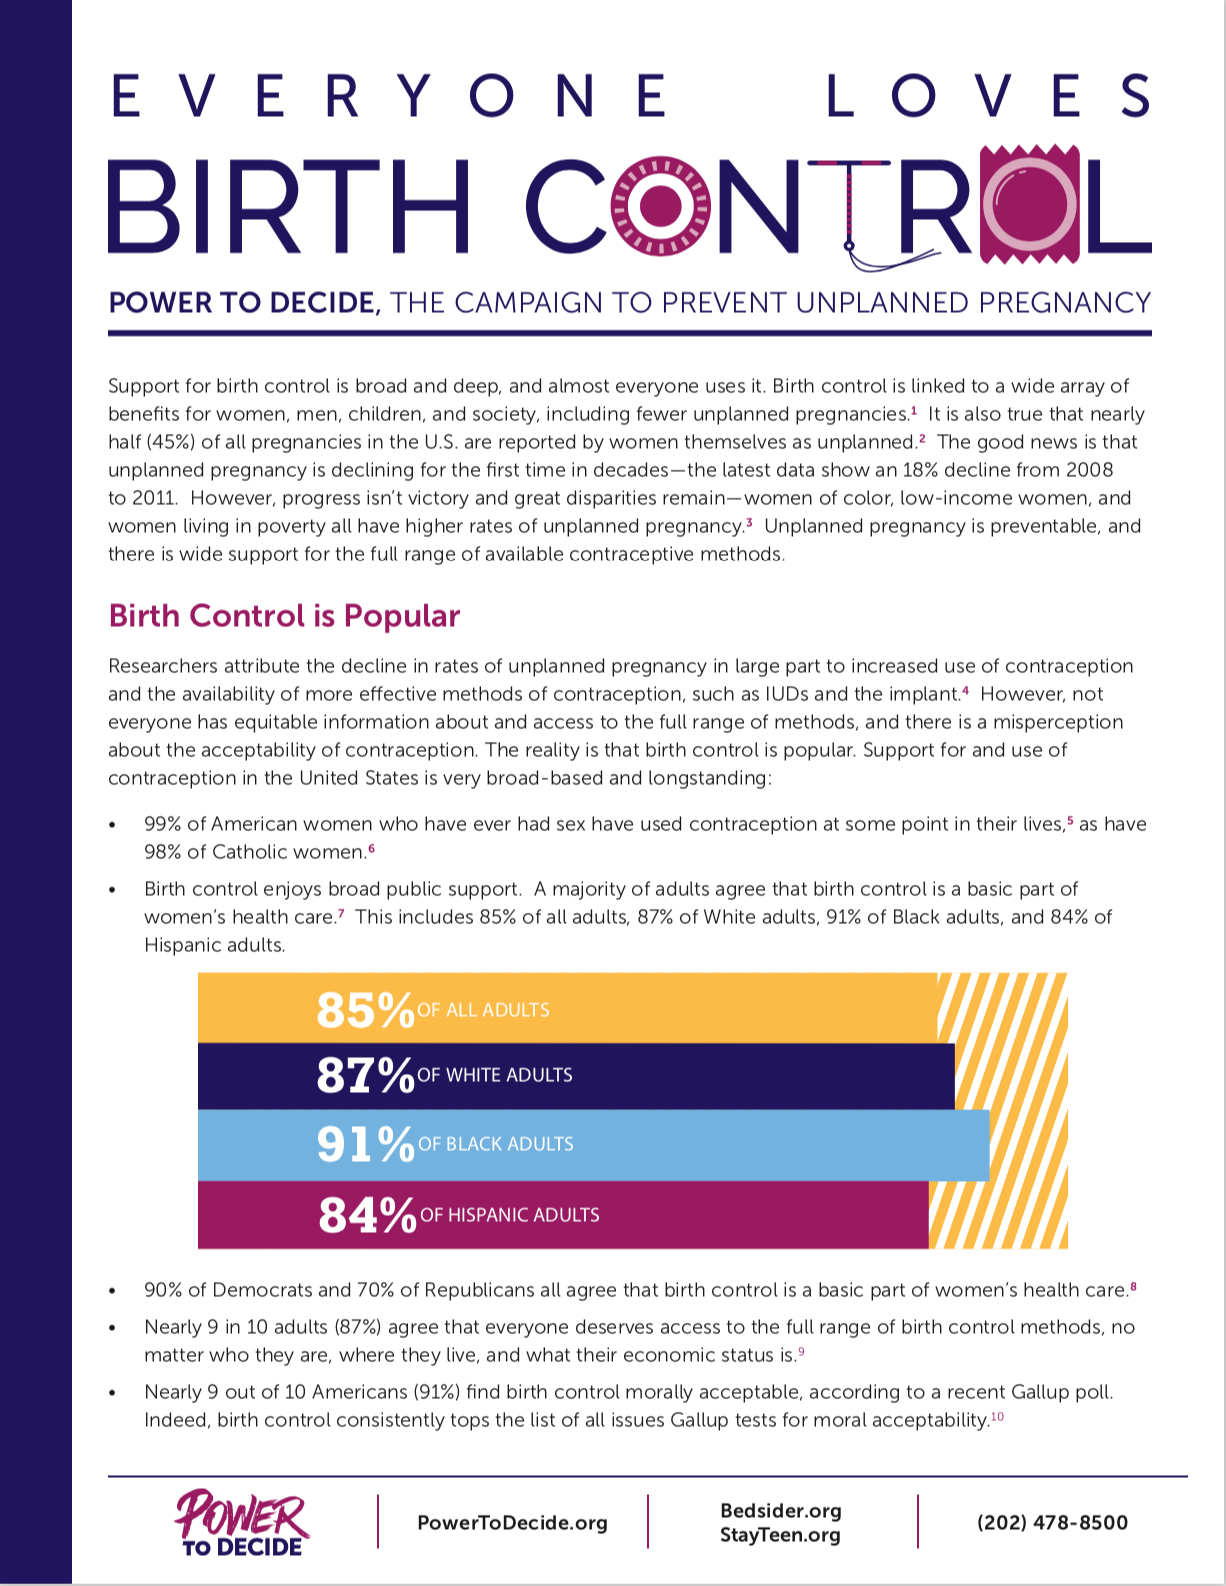 article analysis birth control review by crystal Several case–control studies were matched for factors such as maternal age and birth year, while others without matching reported that characteristics of cases and controls were similar.